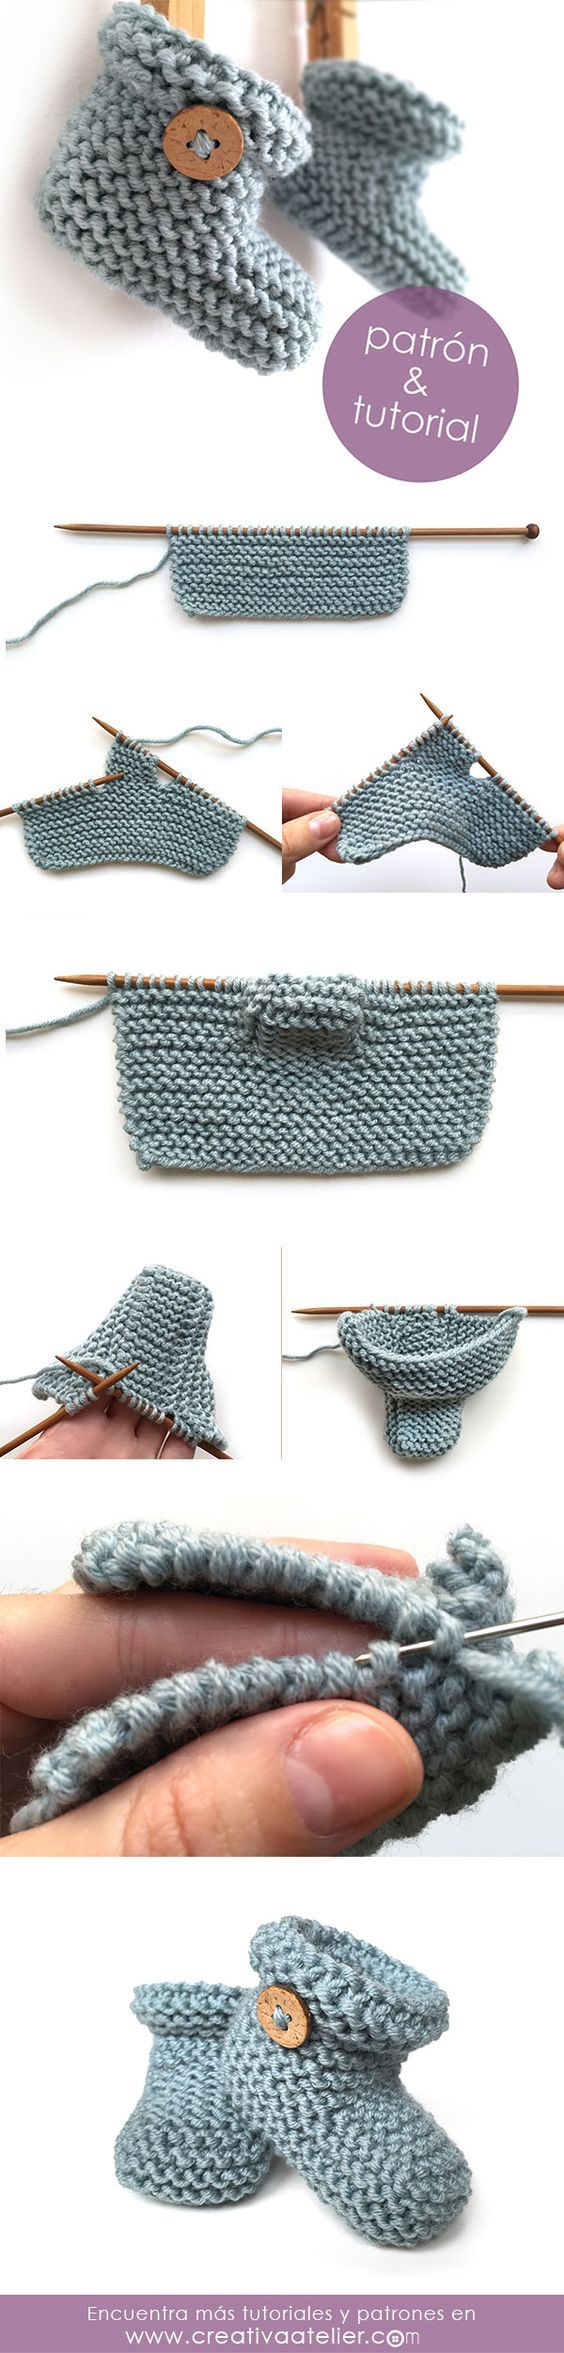 40 + Knit Baby Booties with Pattern | Patrones simples, Sencillo y ...